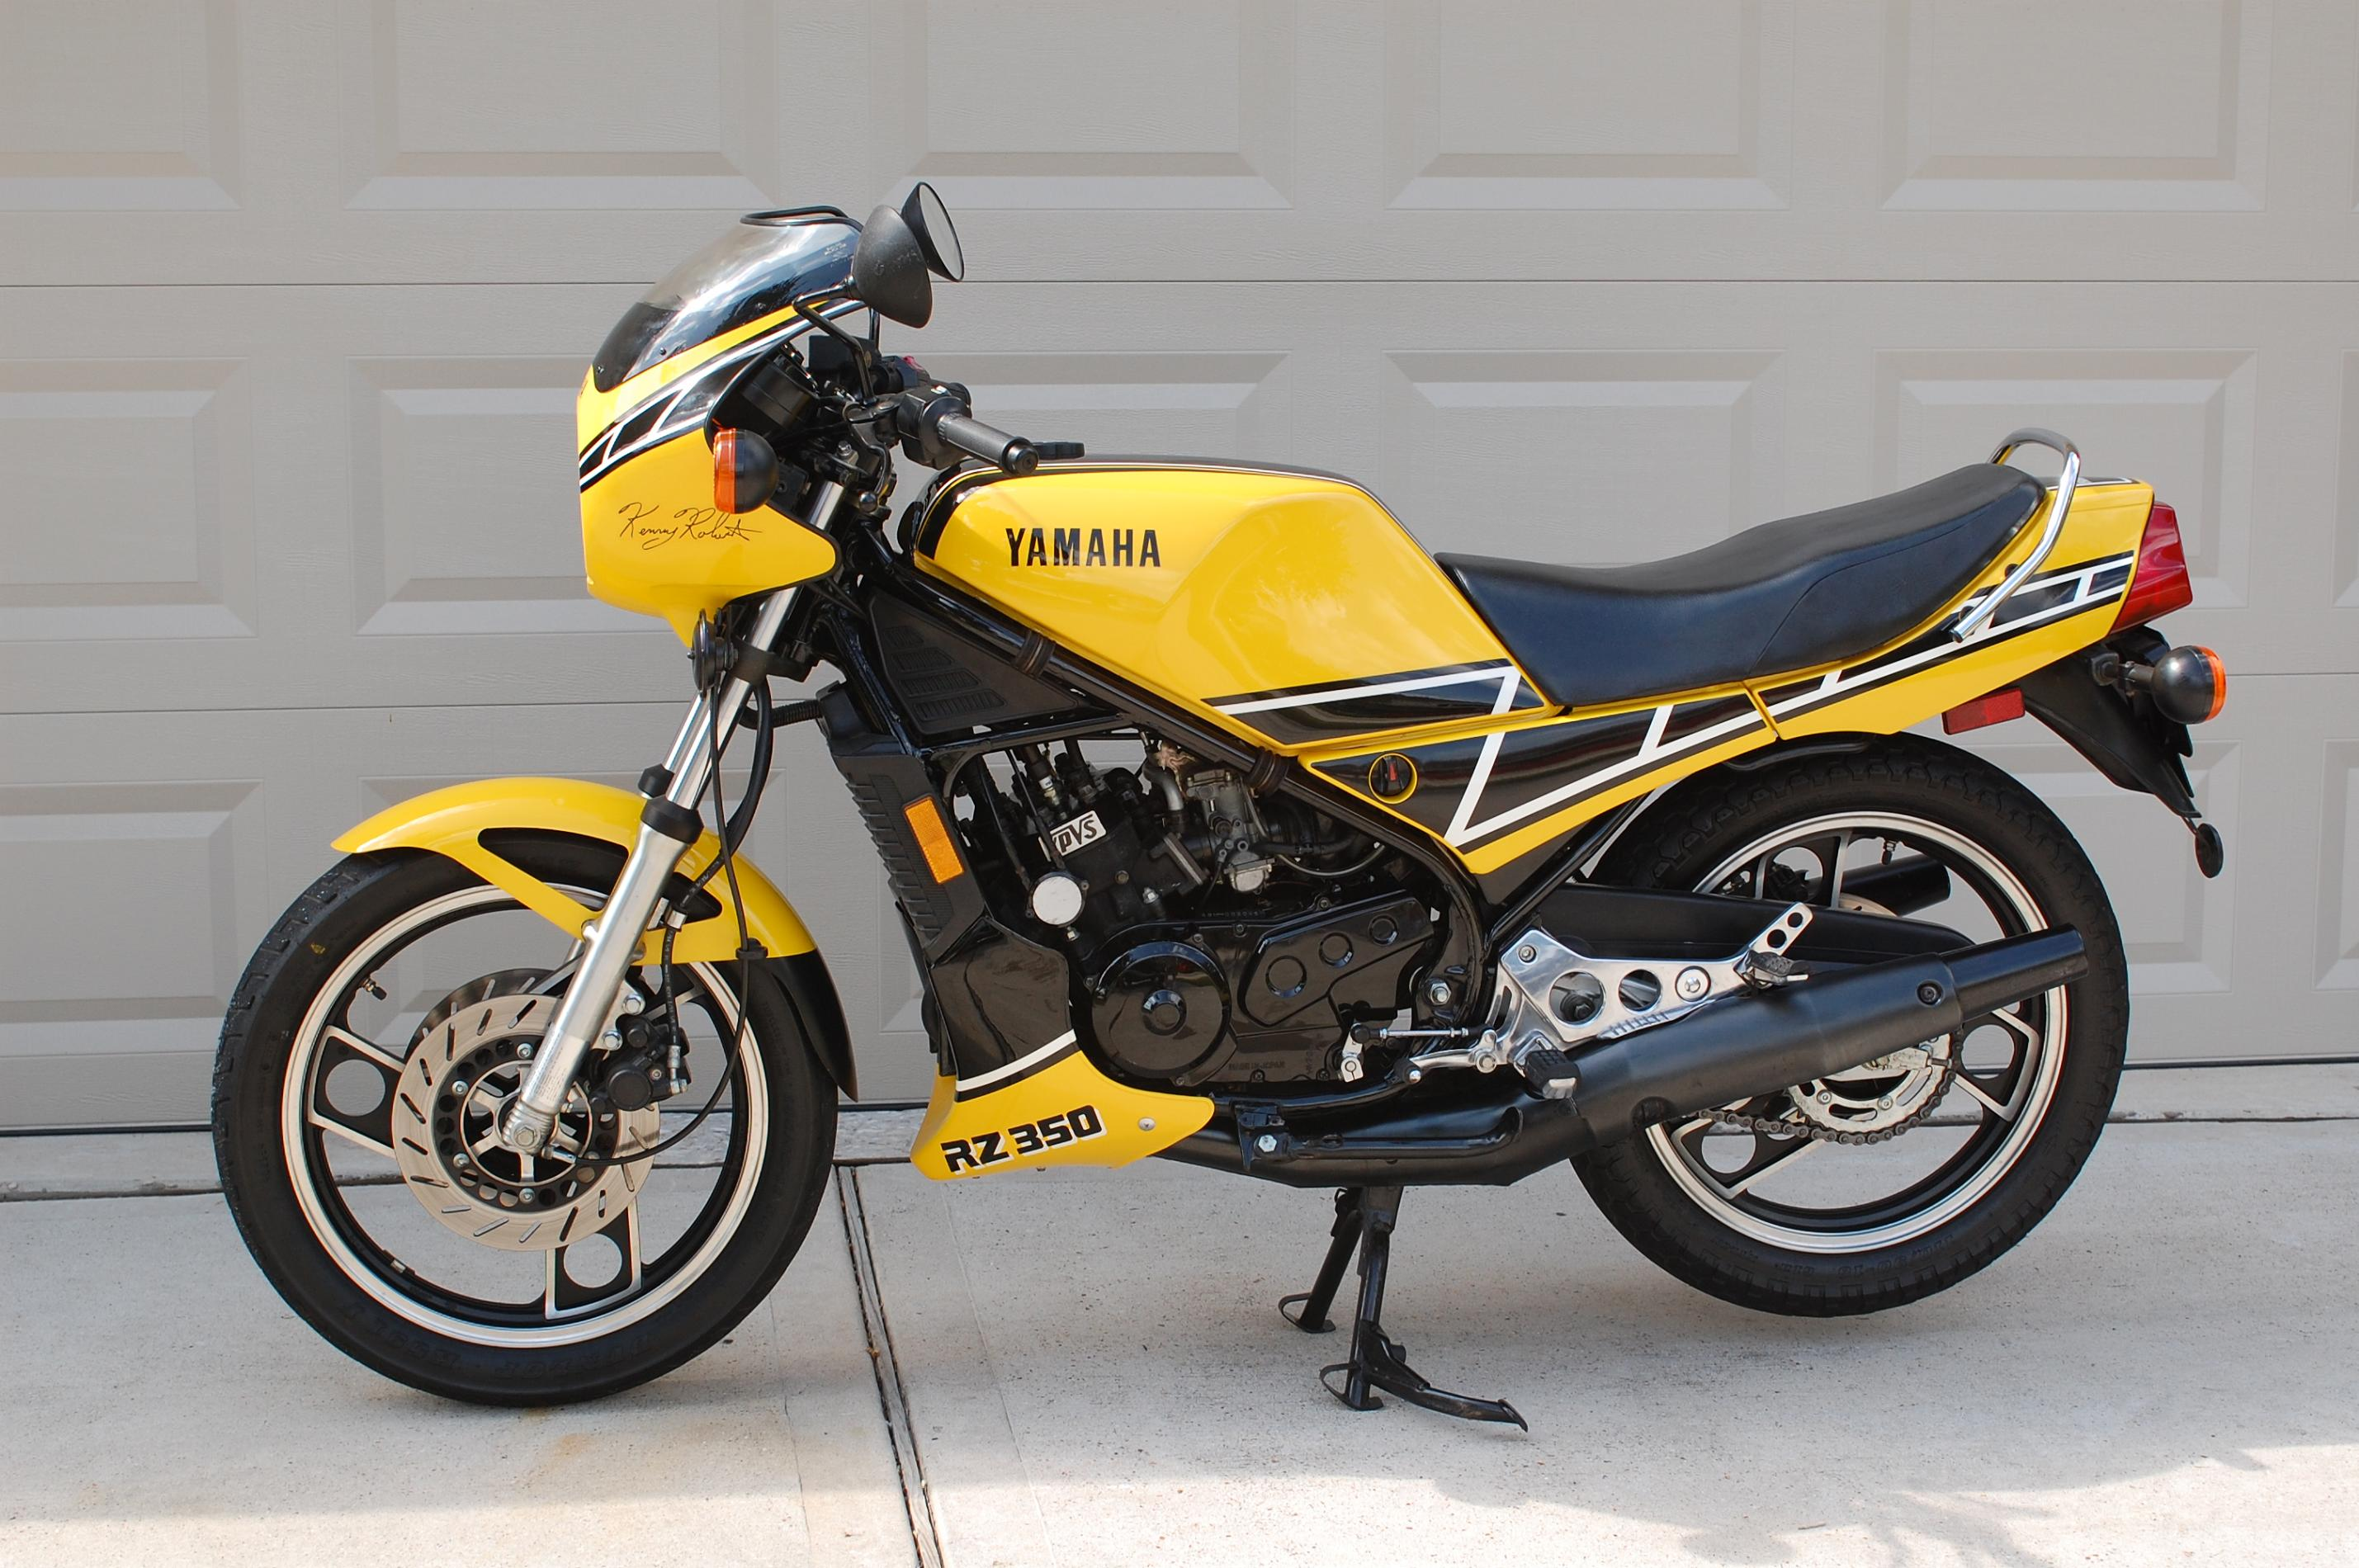 Rz350 2a rare sportbikes for sale for Yamaha rz for sale